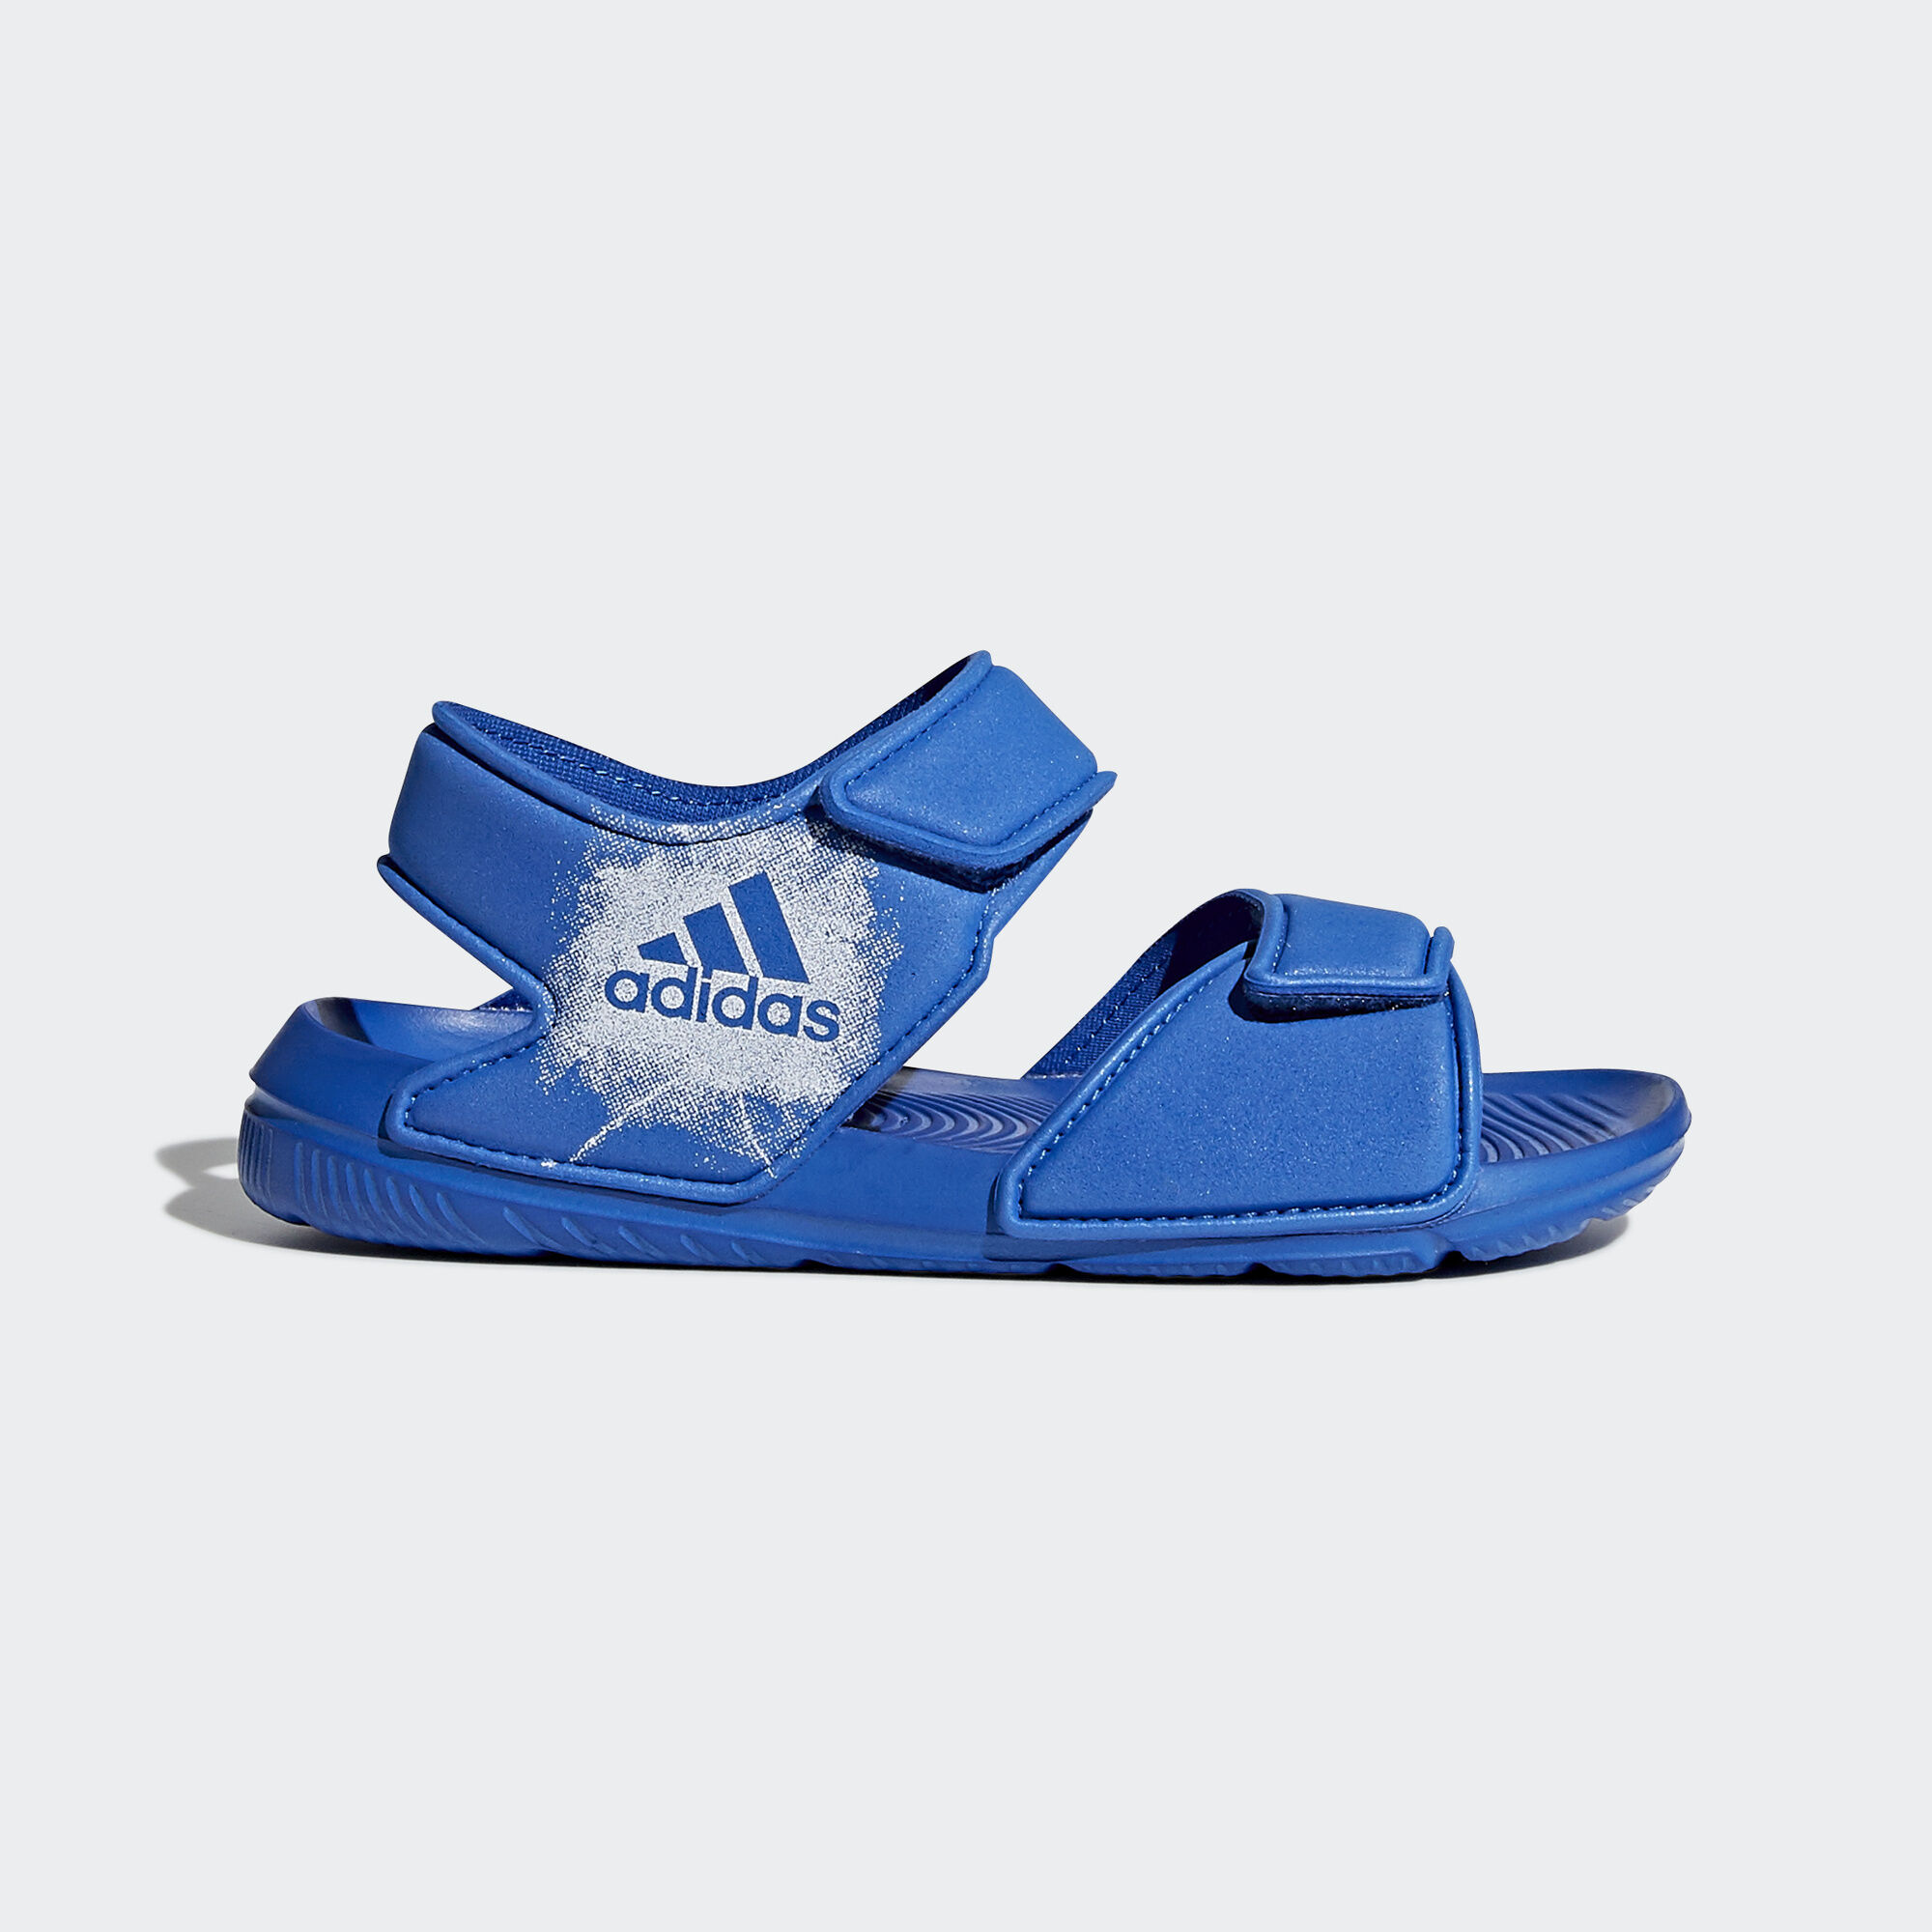 cfd49e1dcd96ea Buy adidas slippers kids blue   OFF55% Discounted